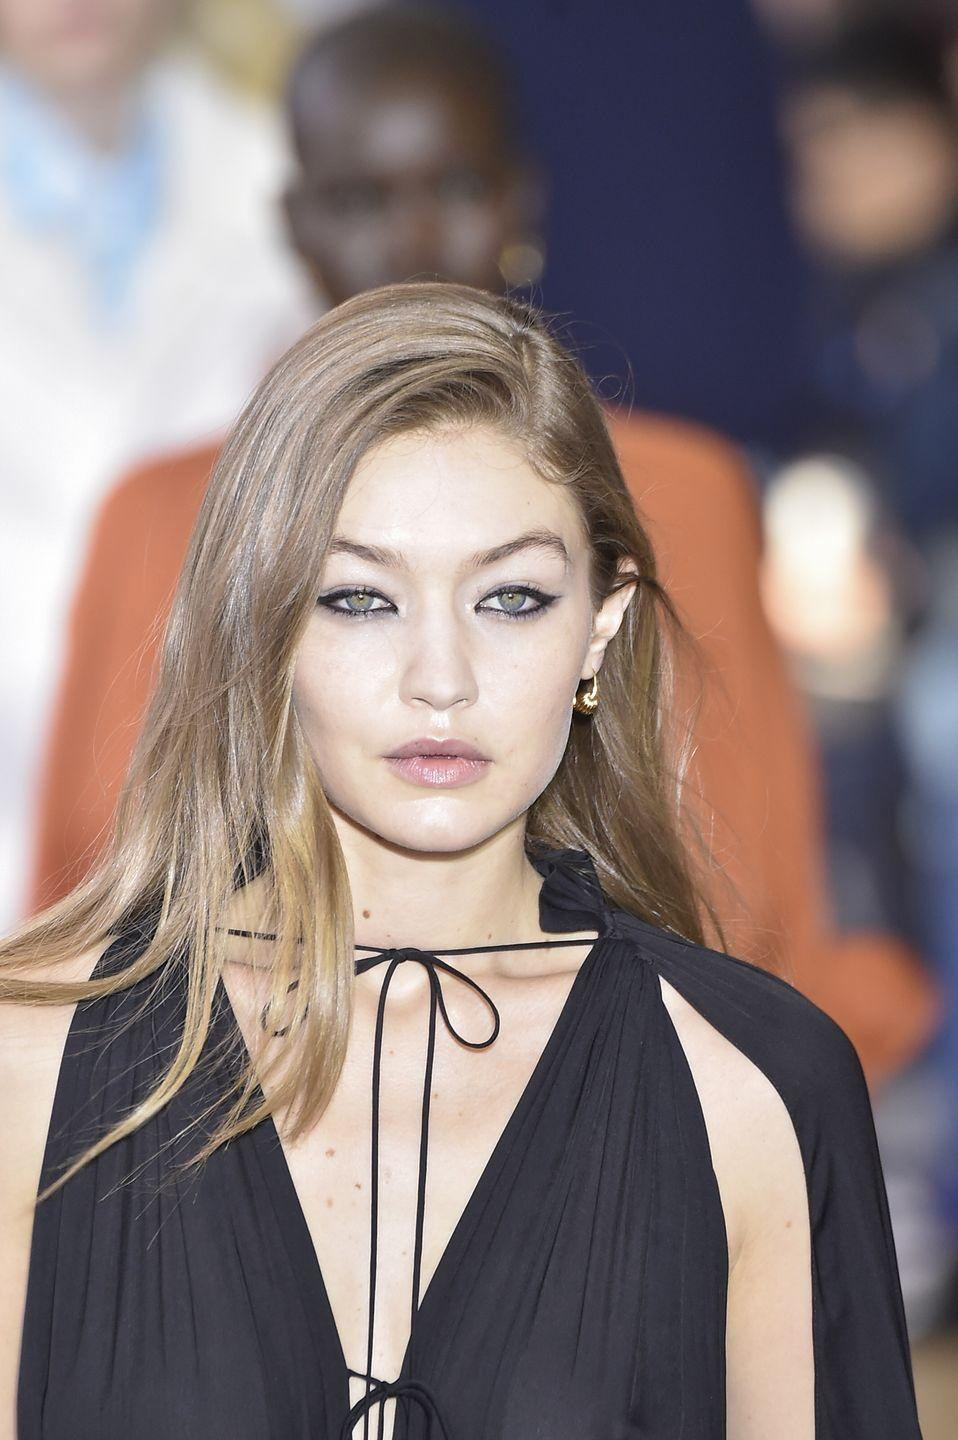 <p>For those looking for a more natural look, try softer, glowing beige or buttery tones instead of bright blonde, says Choate. Gigi Hadid's mushroom blonde is a great example of this. </p>